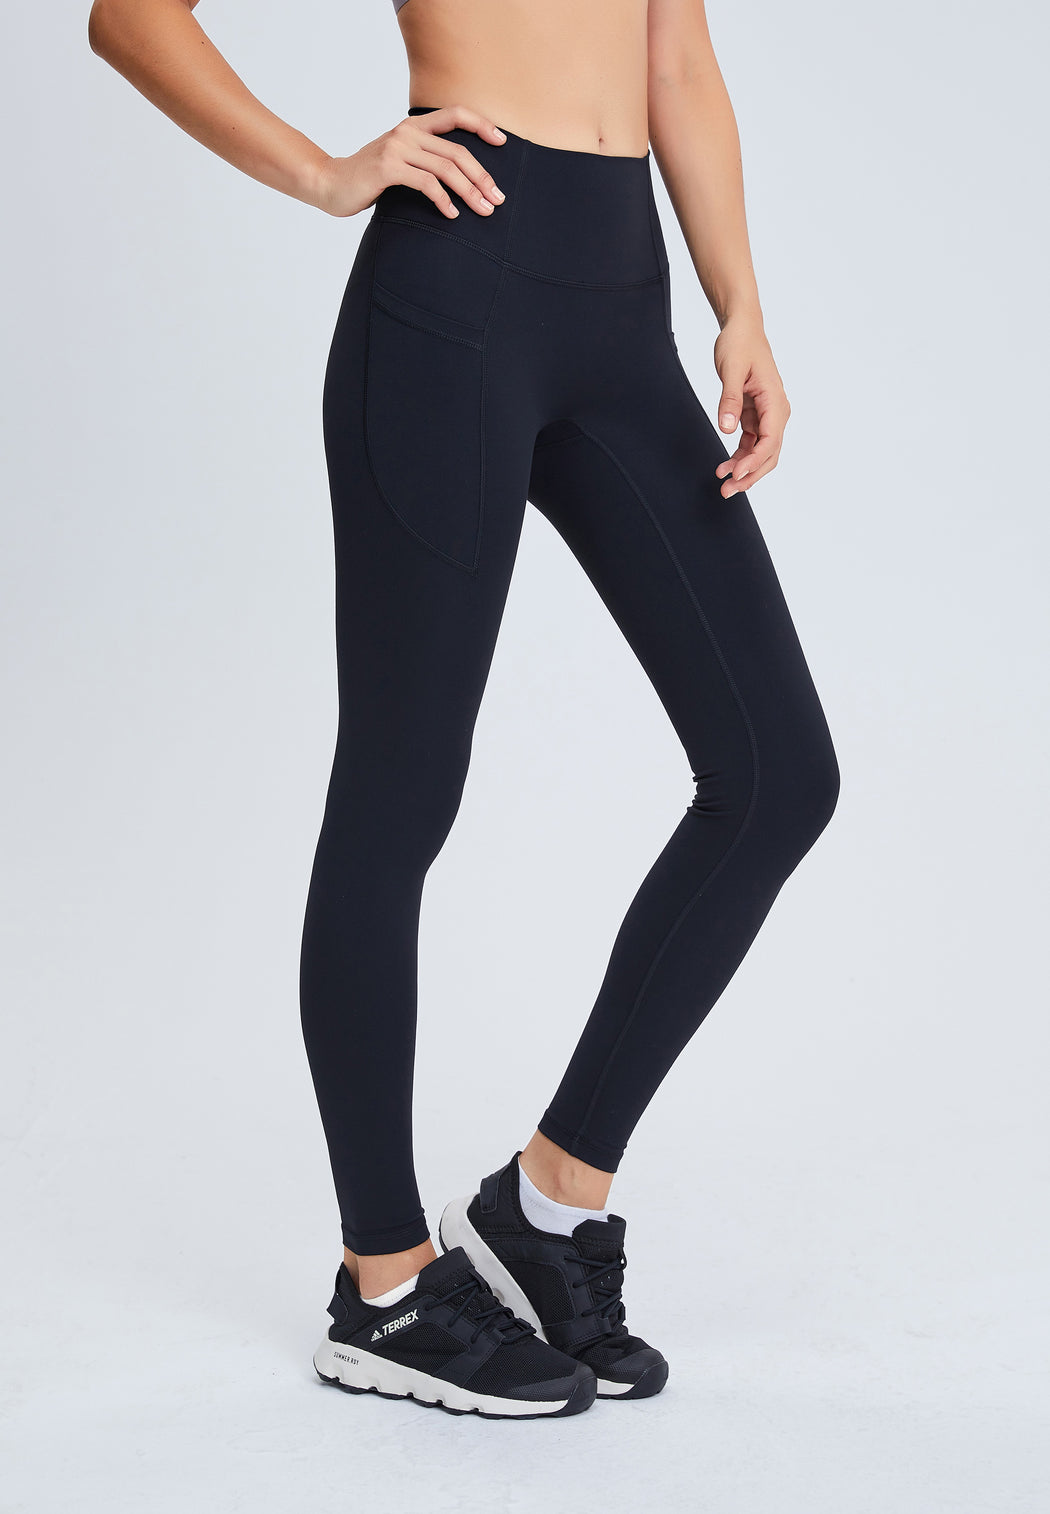 High Waist Go-Train Leggings With Sides Pockets